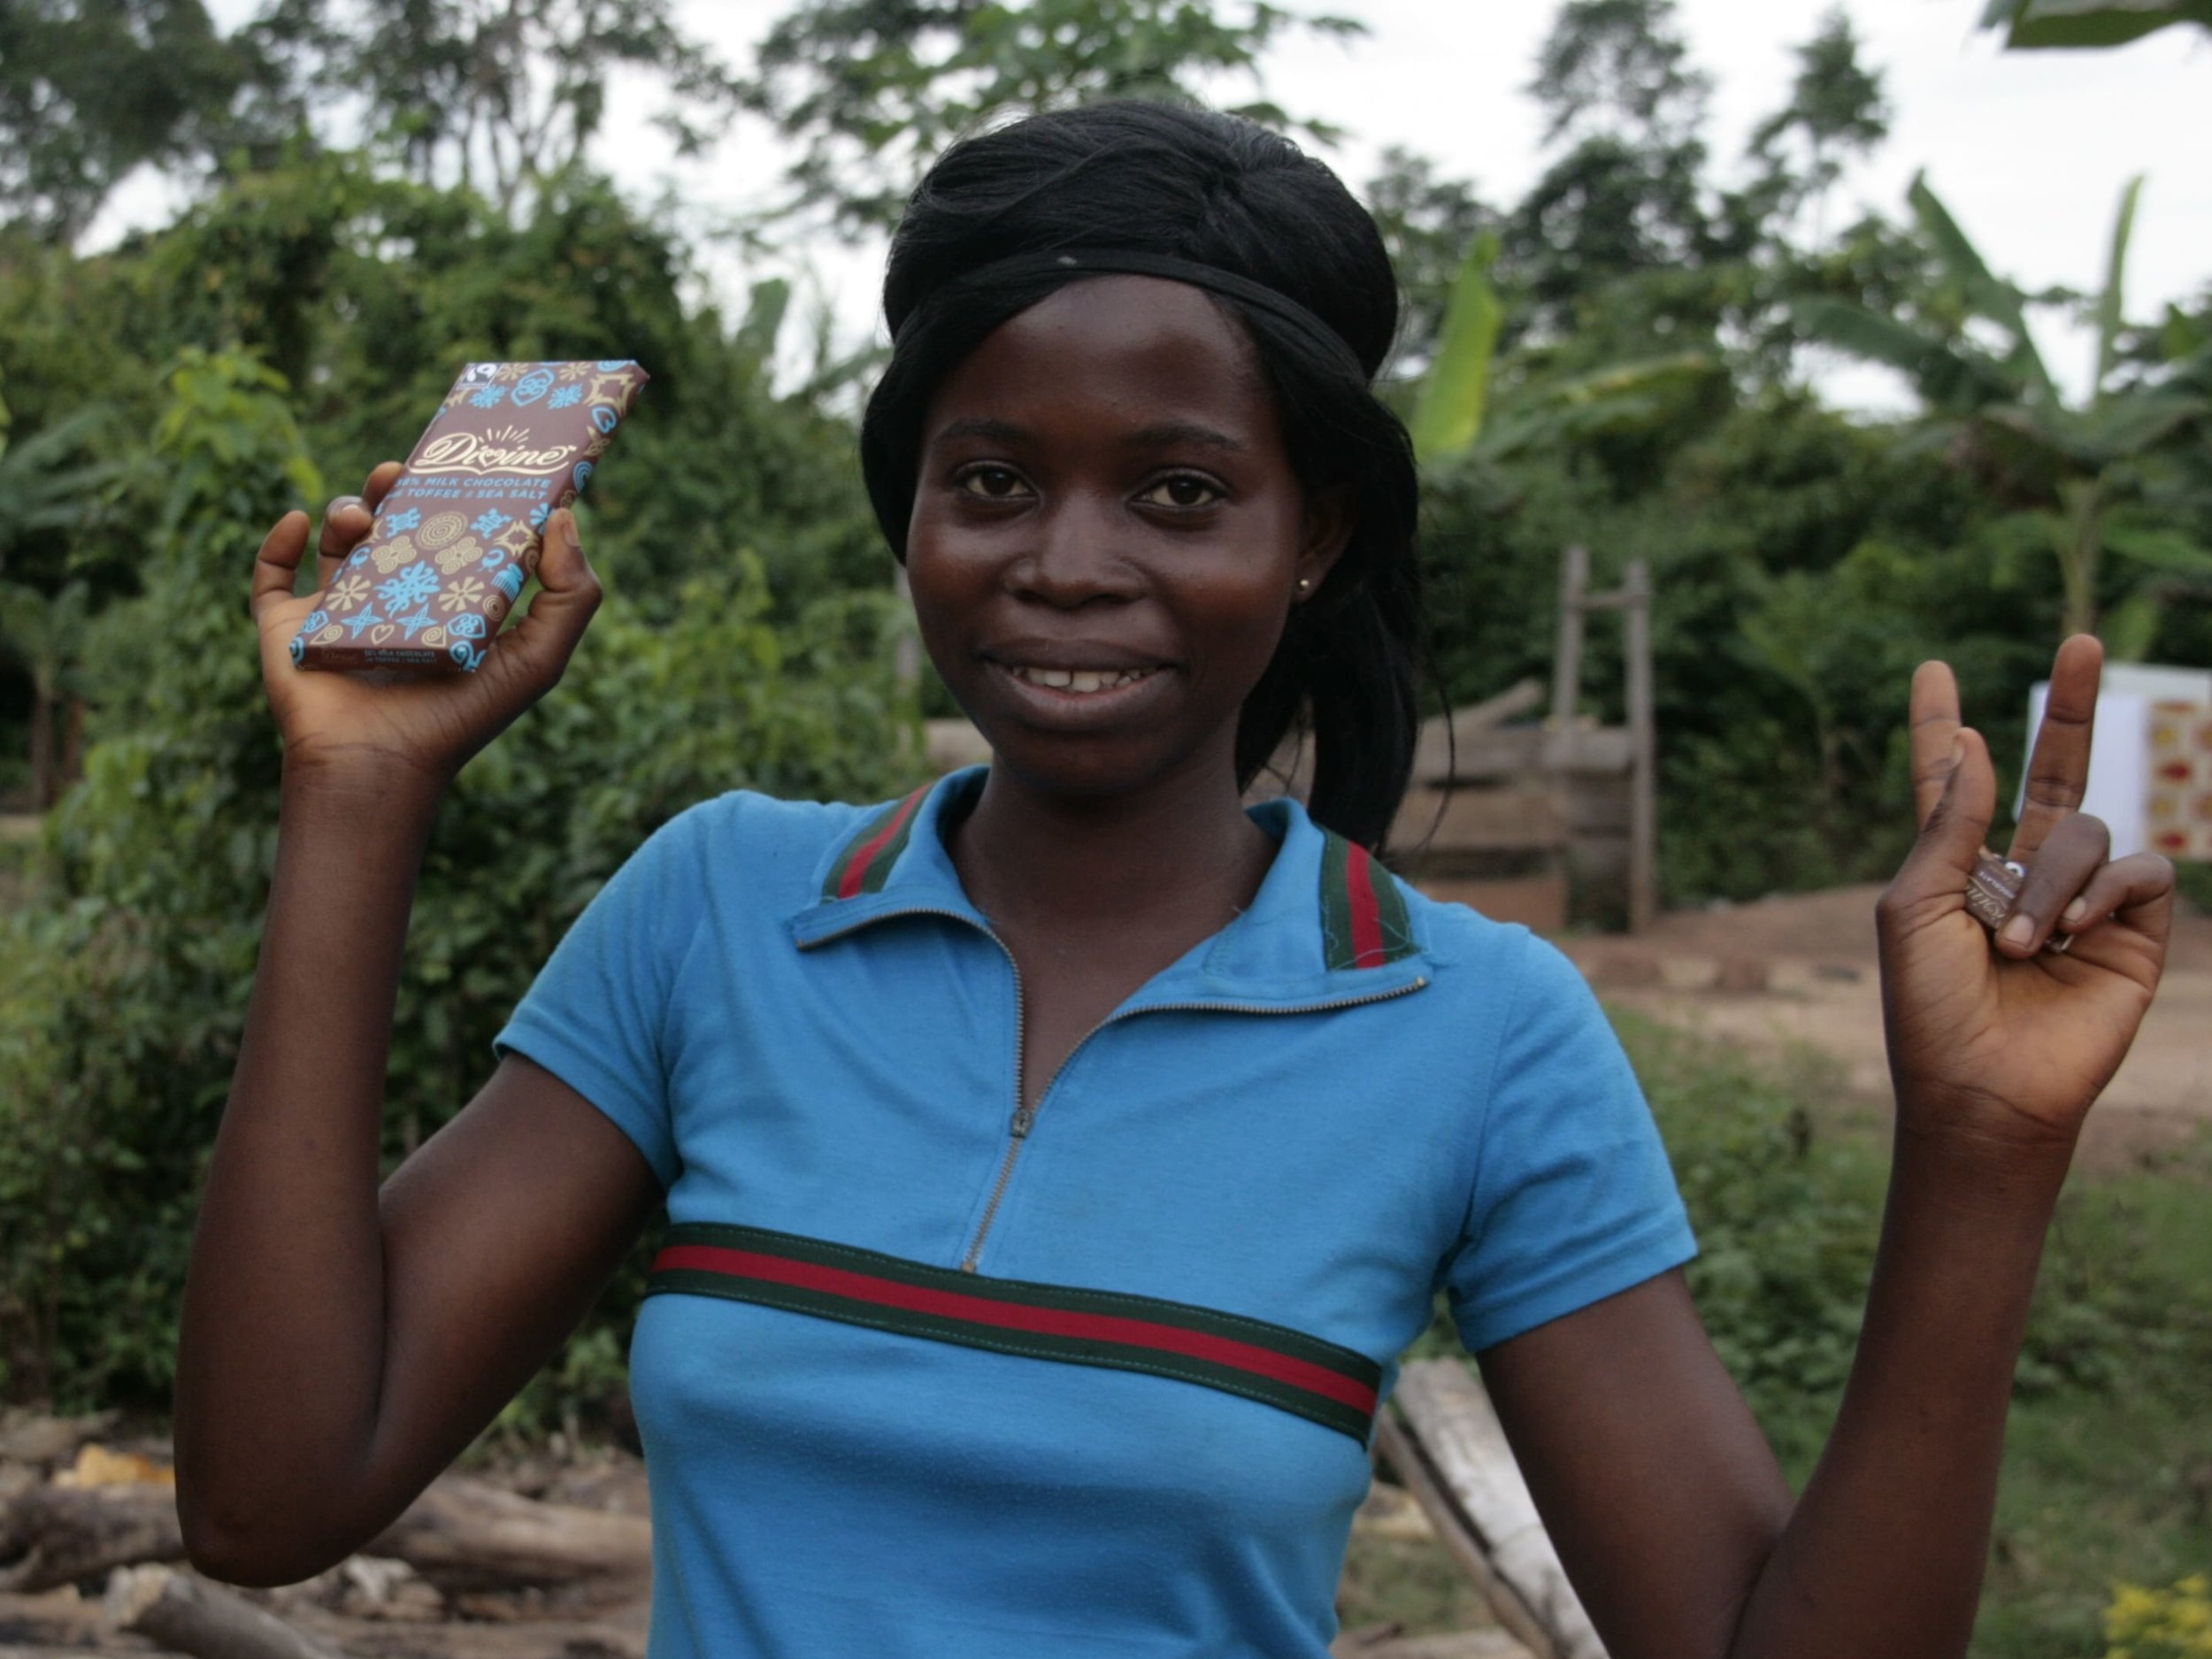 Coco farmer with Divine chocolate